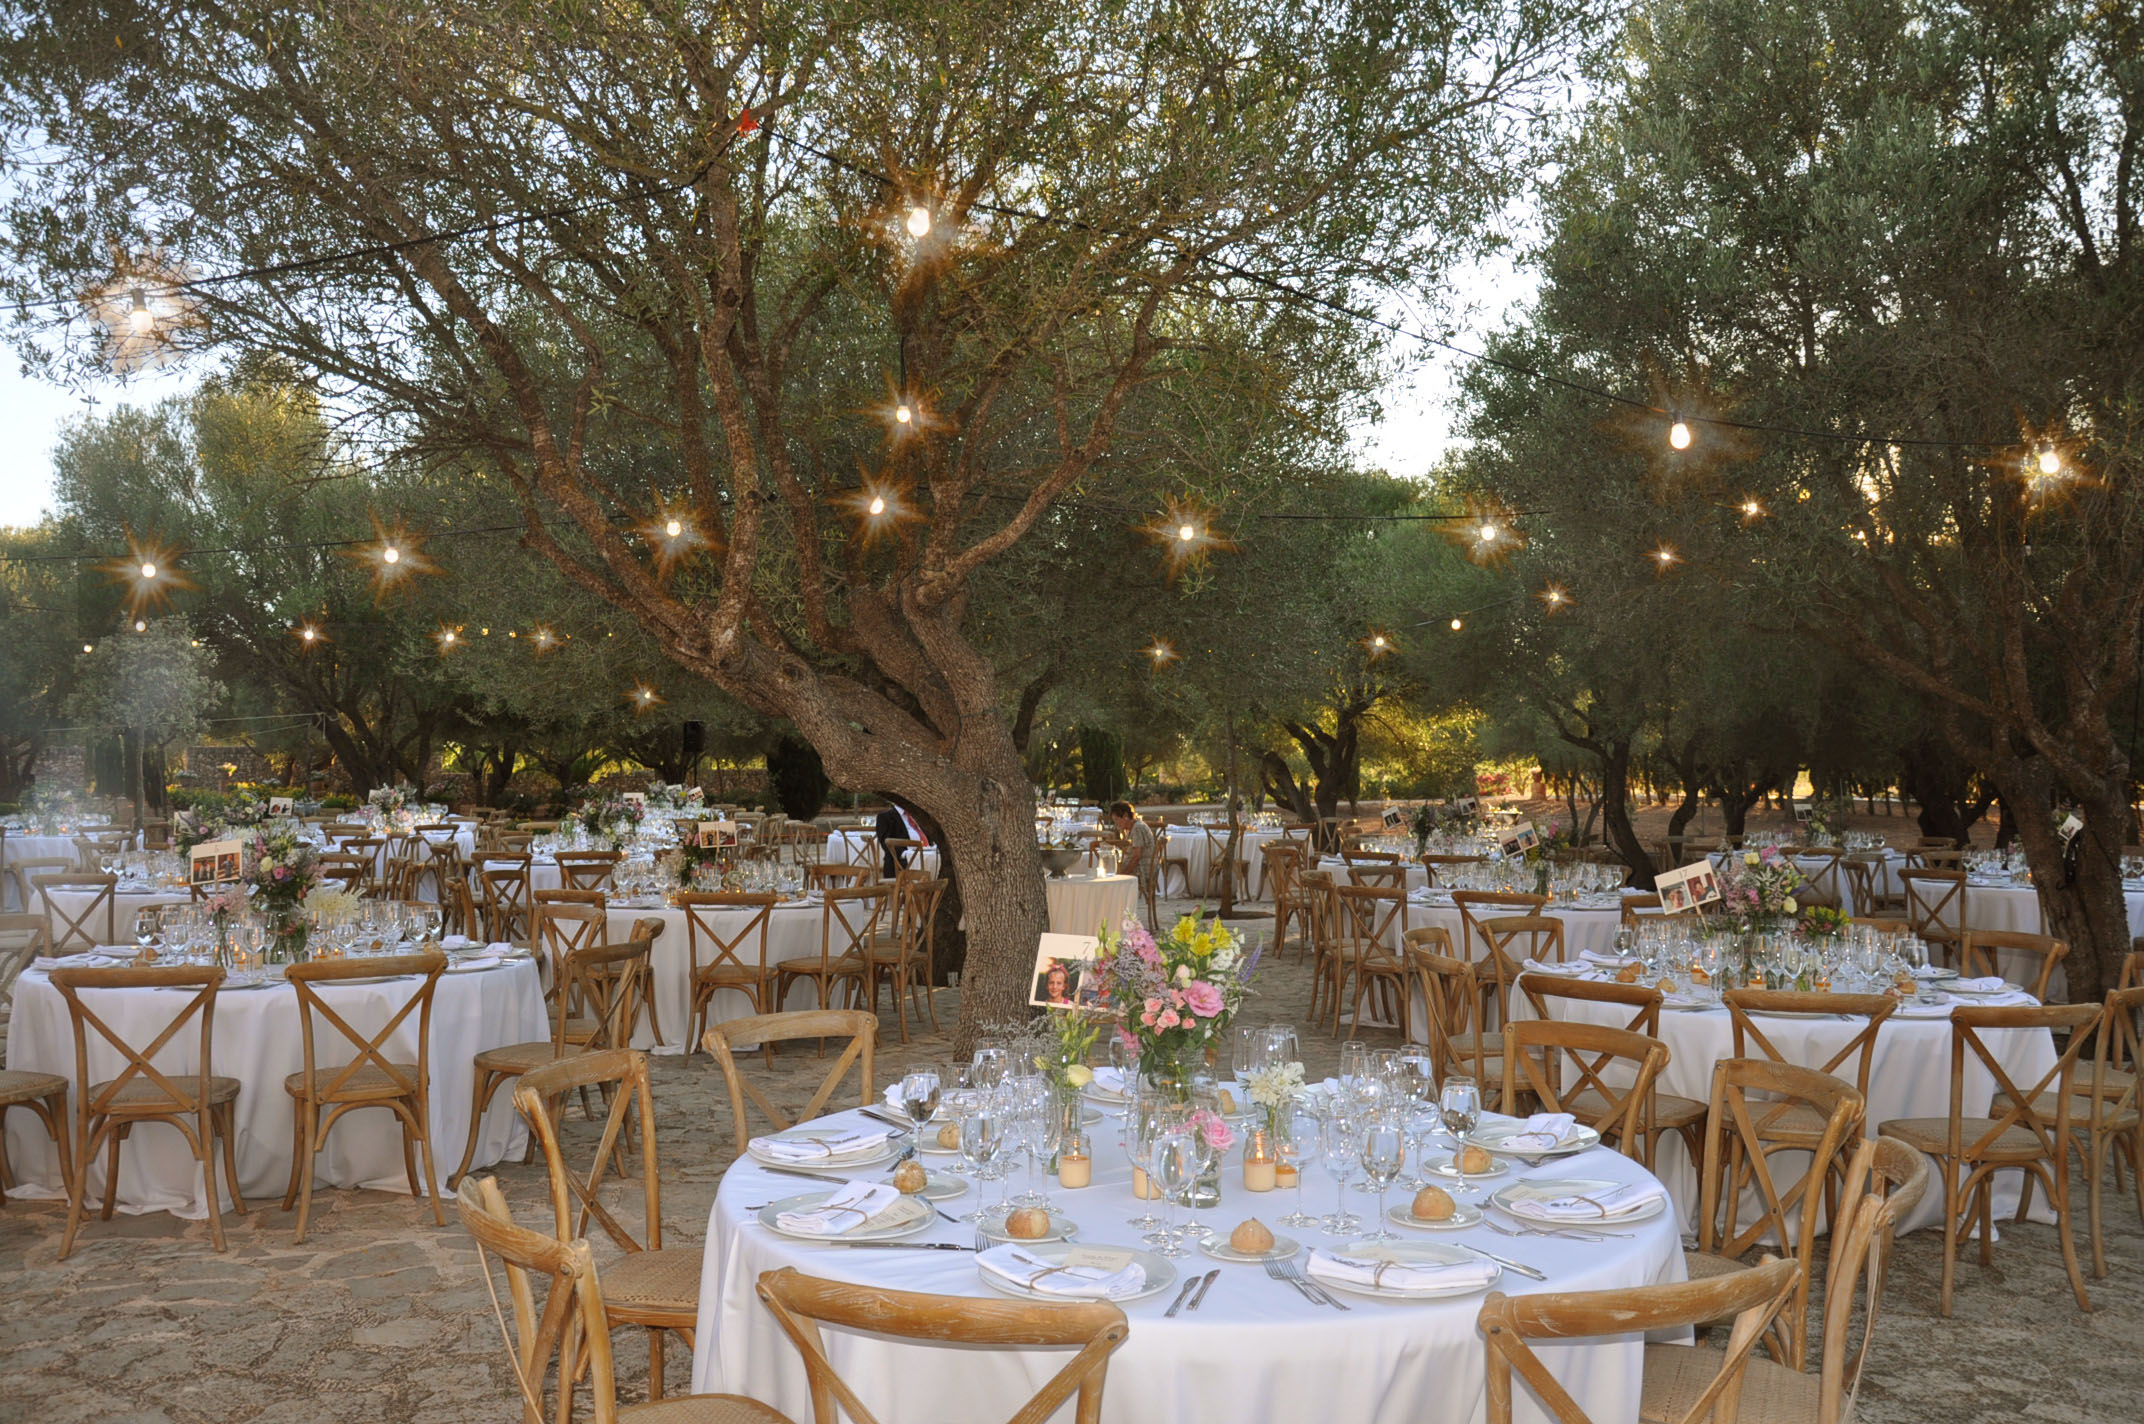 Lovely Rustic Wedding Set-up. Son Doblons, Spain